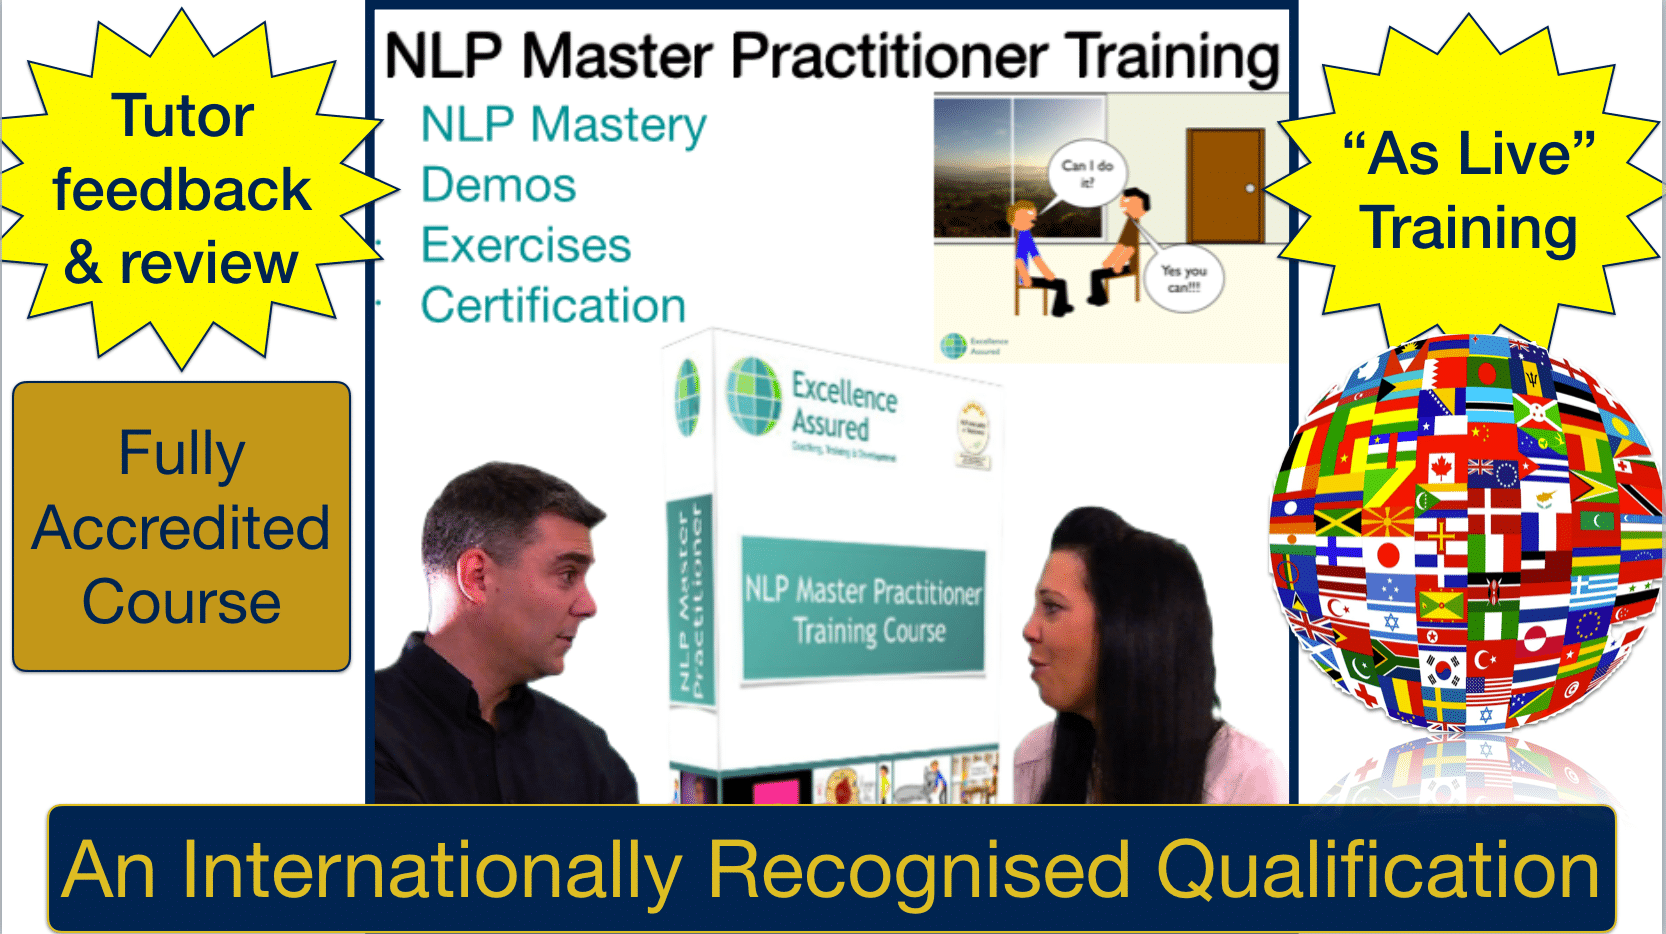 NLP Master Practitioner Training Course - International